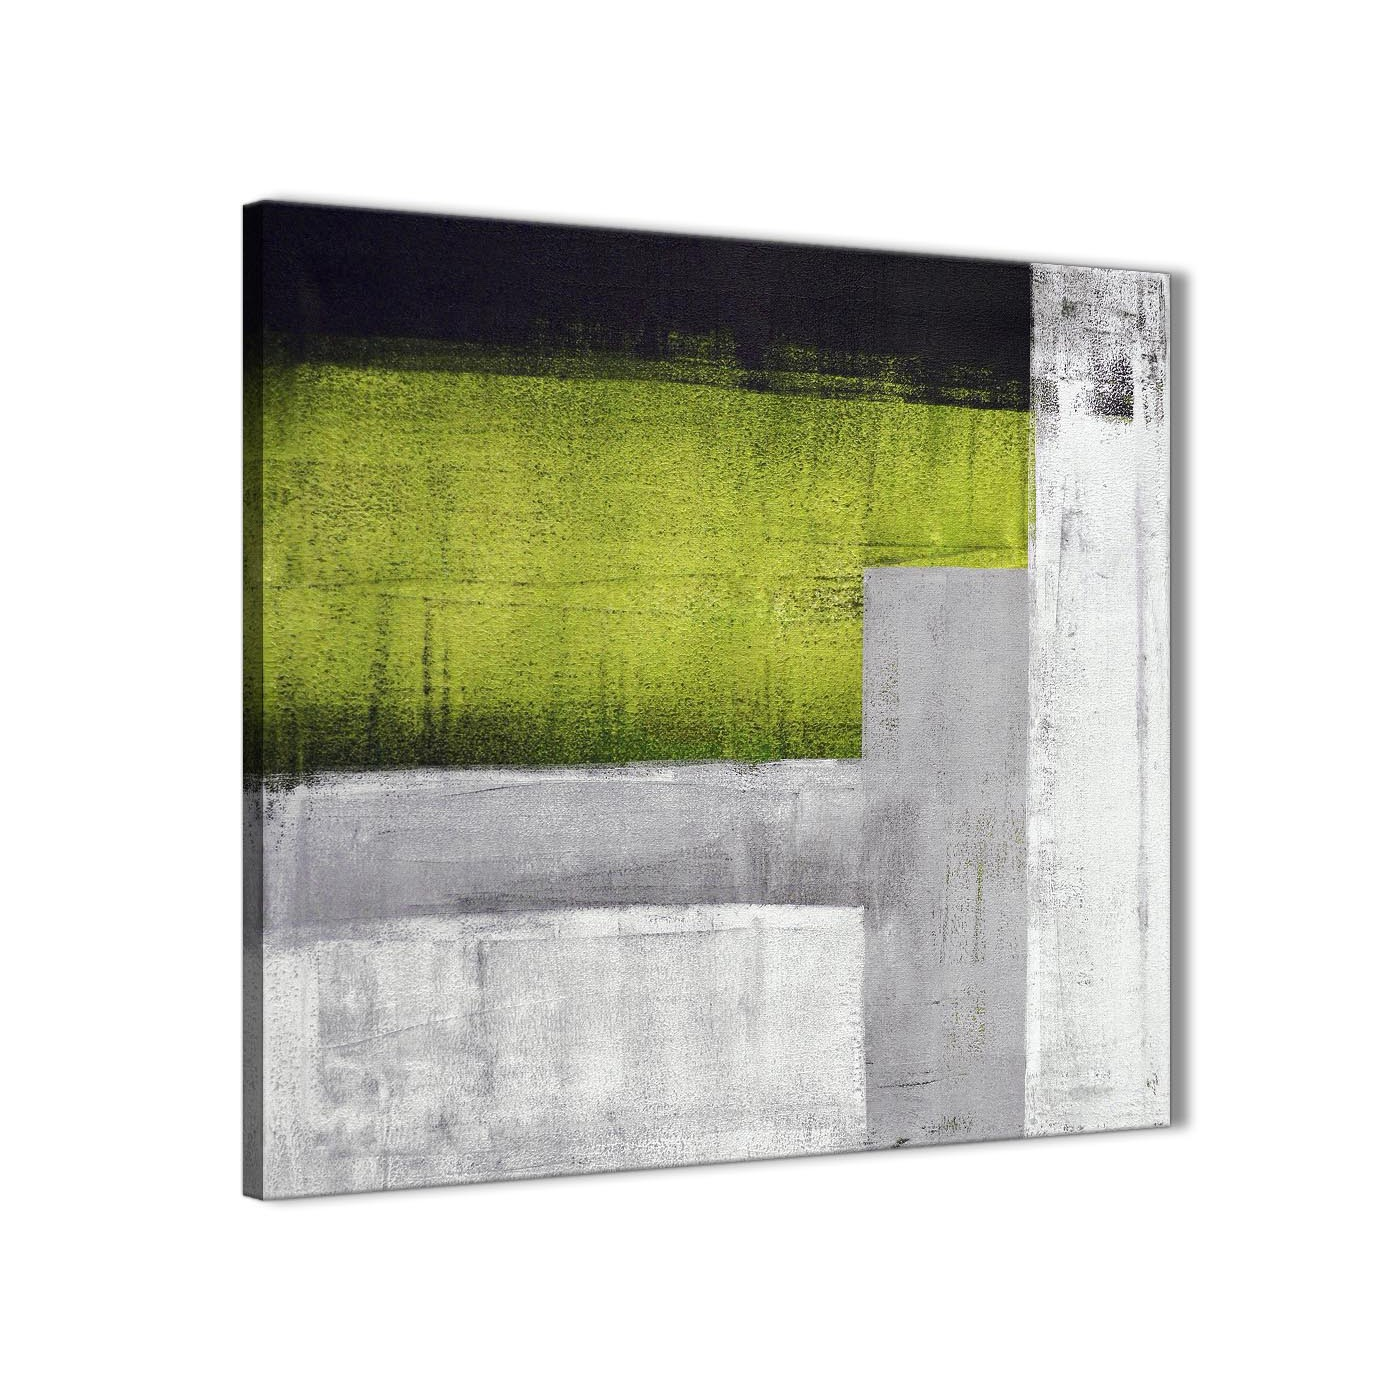 lime green office accessories. Display Gallery Item 3; Modern Lime Green Grey Painting Abstract Office  Canvas Pictures Accessories 1s424l - 79cm Square Print 4 Lime Green Office Accessories G